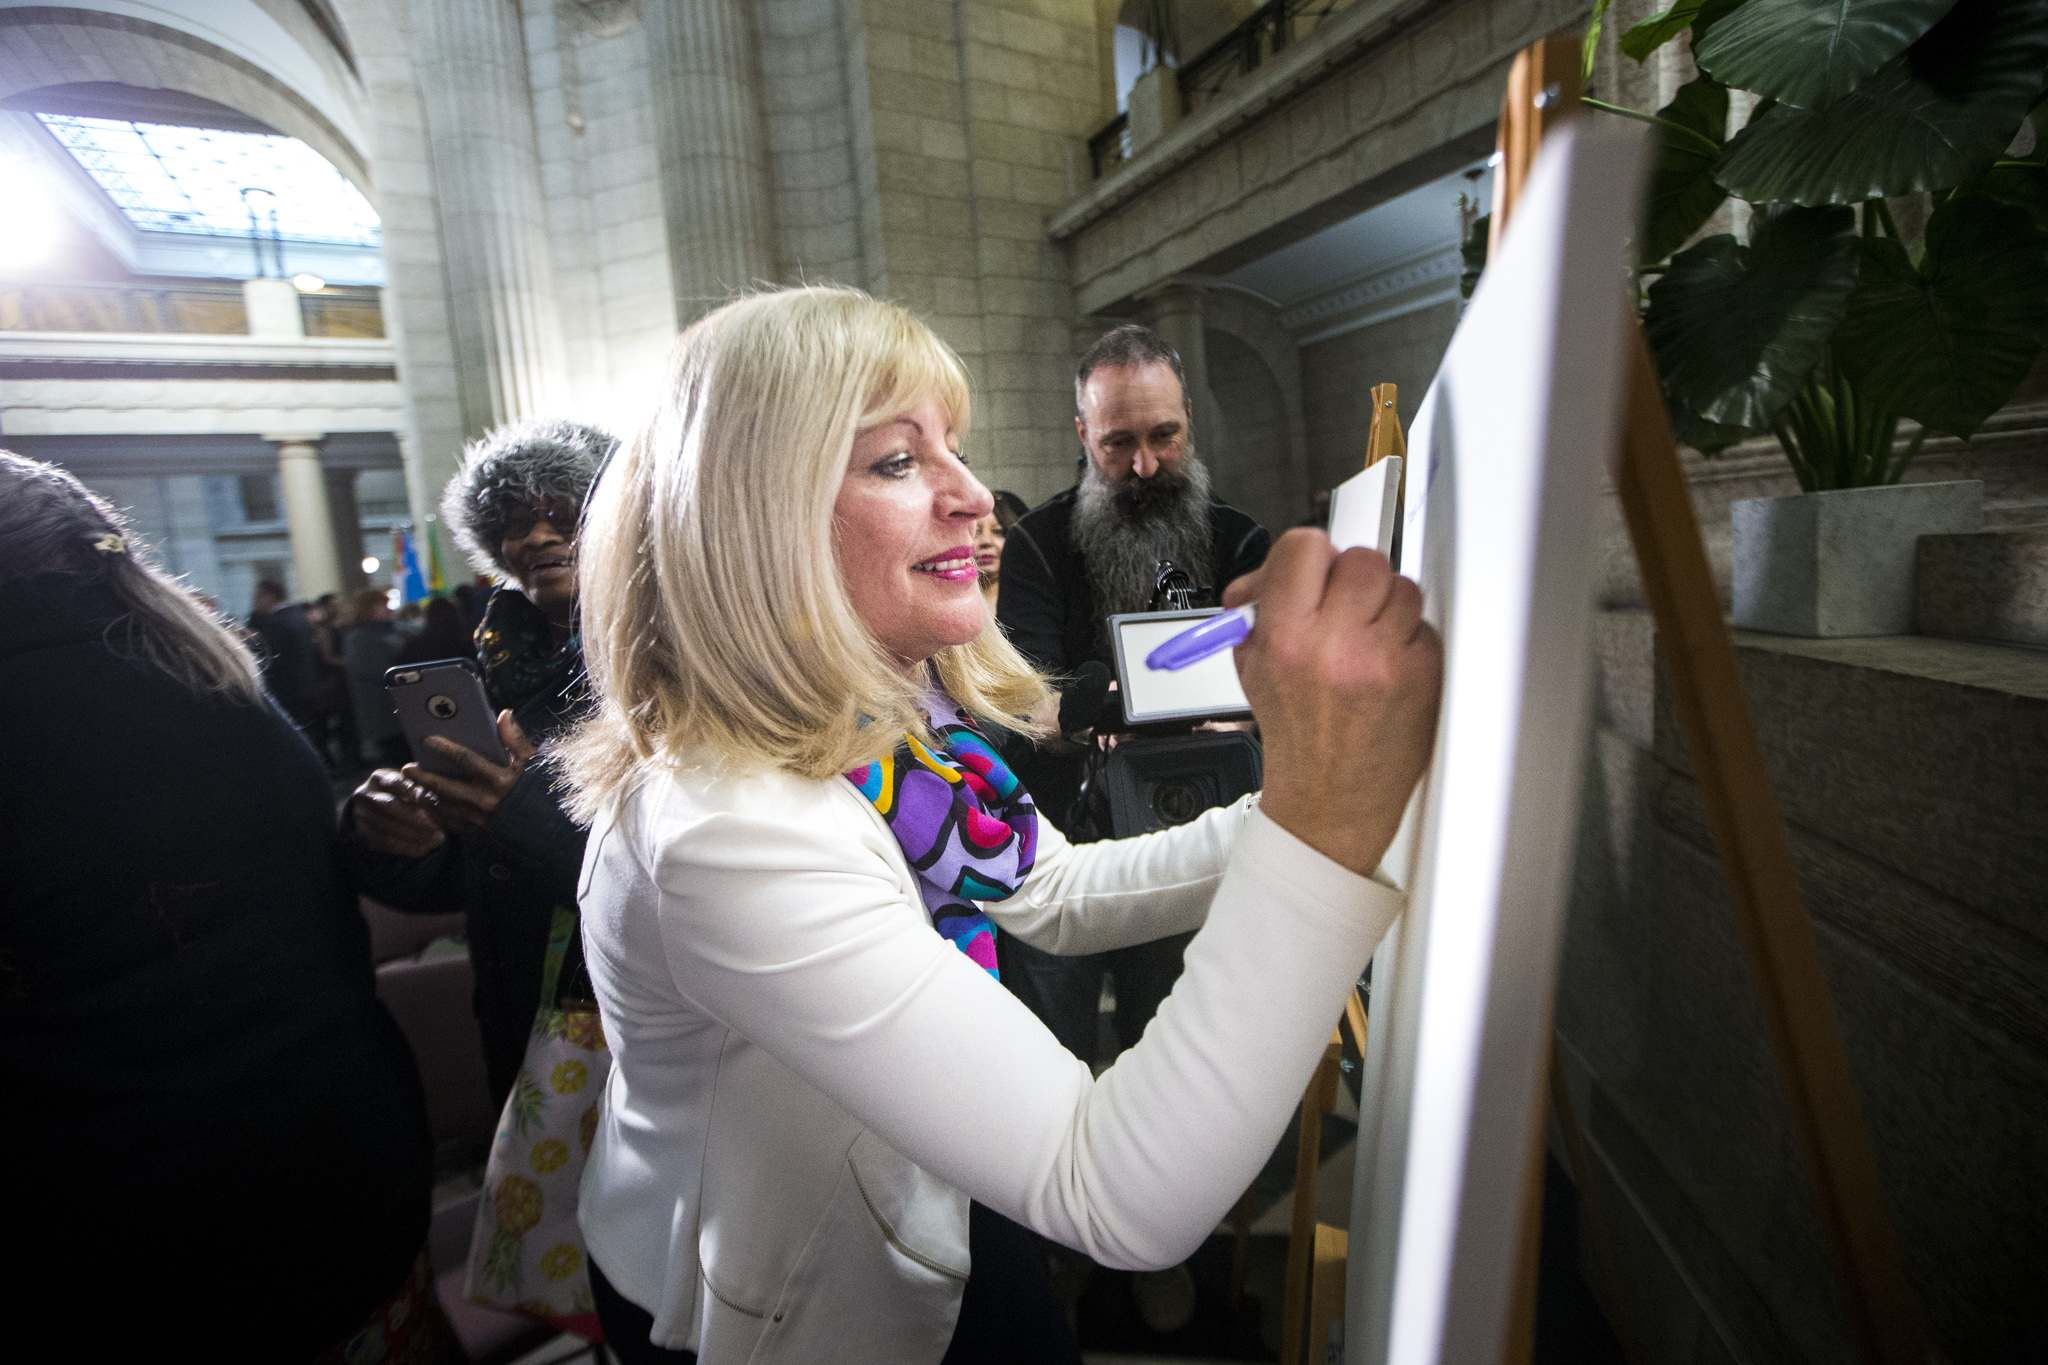 <p>Cathy Cox writes the name of a woman who inspires her (her Baba) on a canvas at the Manitoba Legislative Monday.</p>